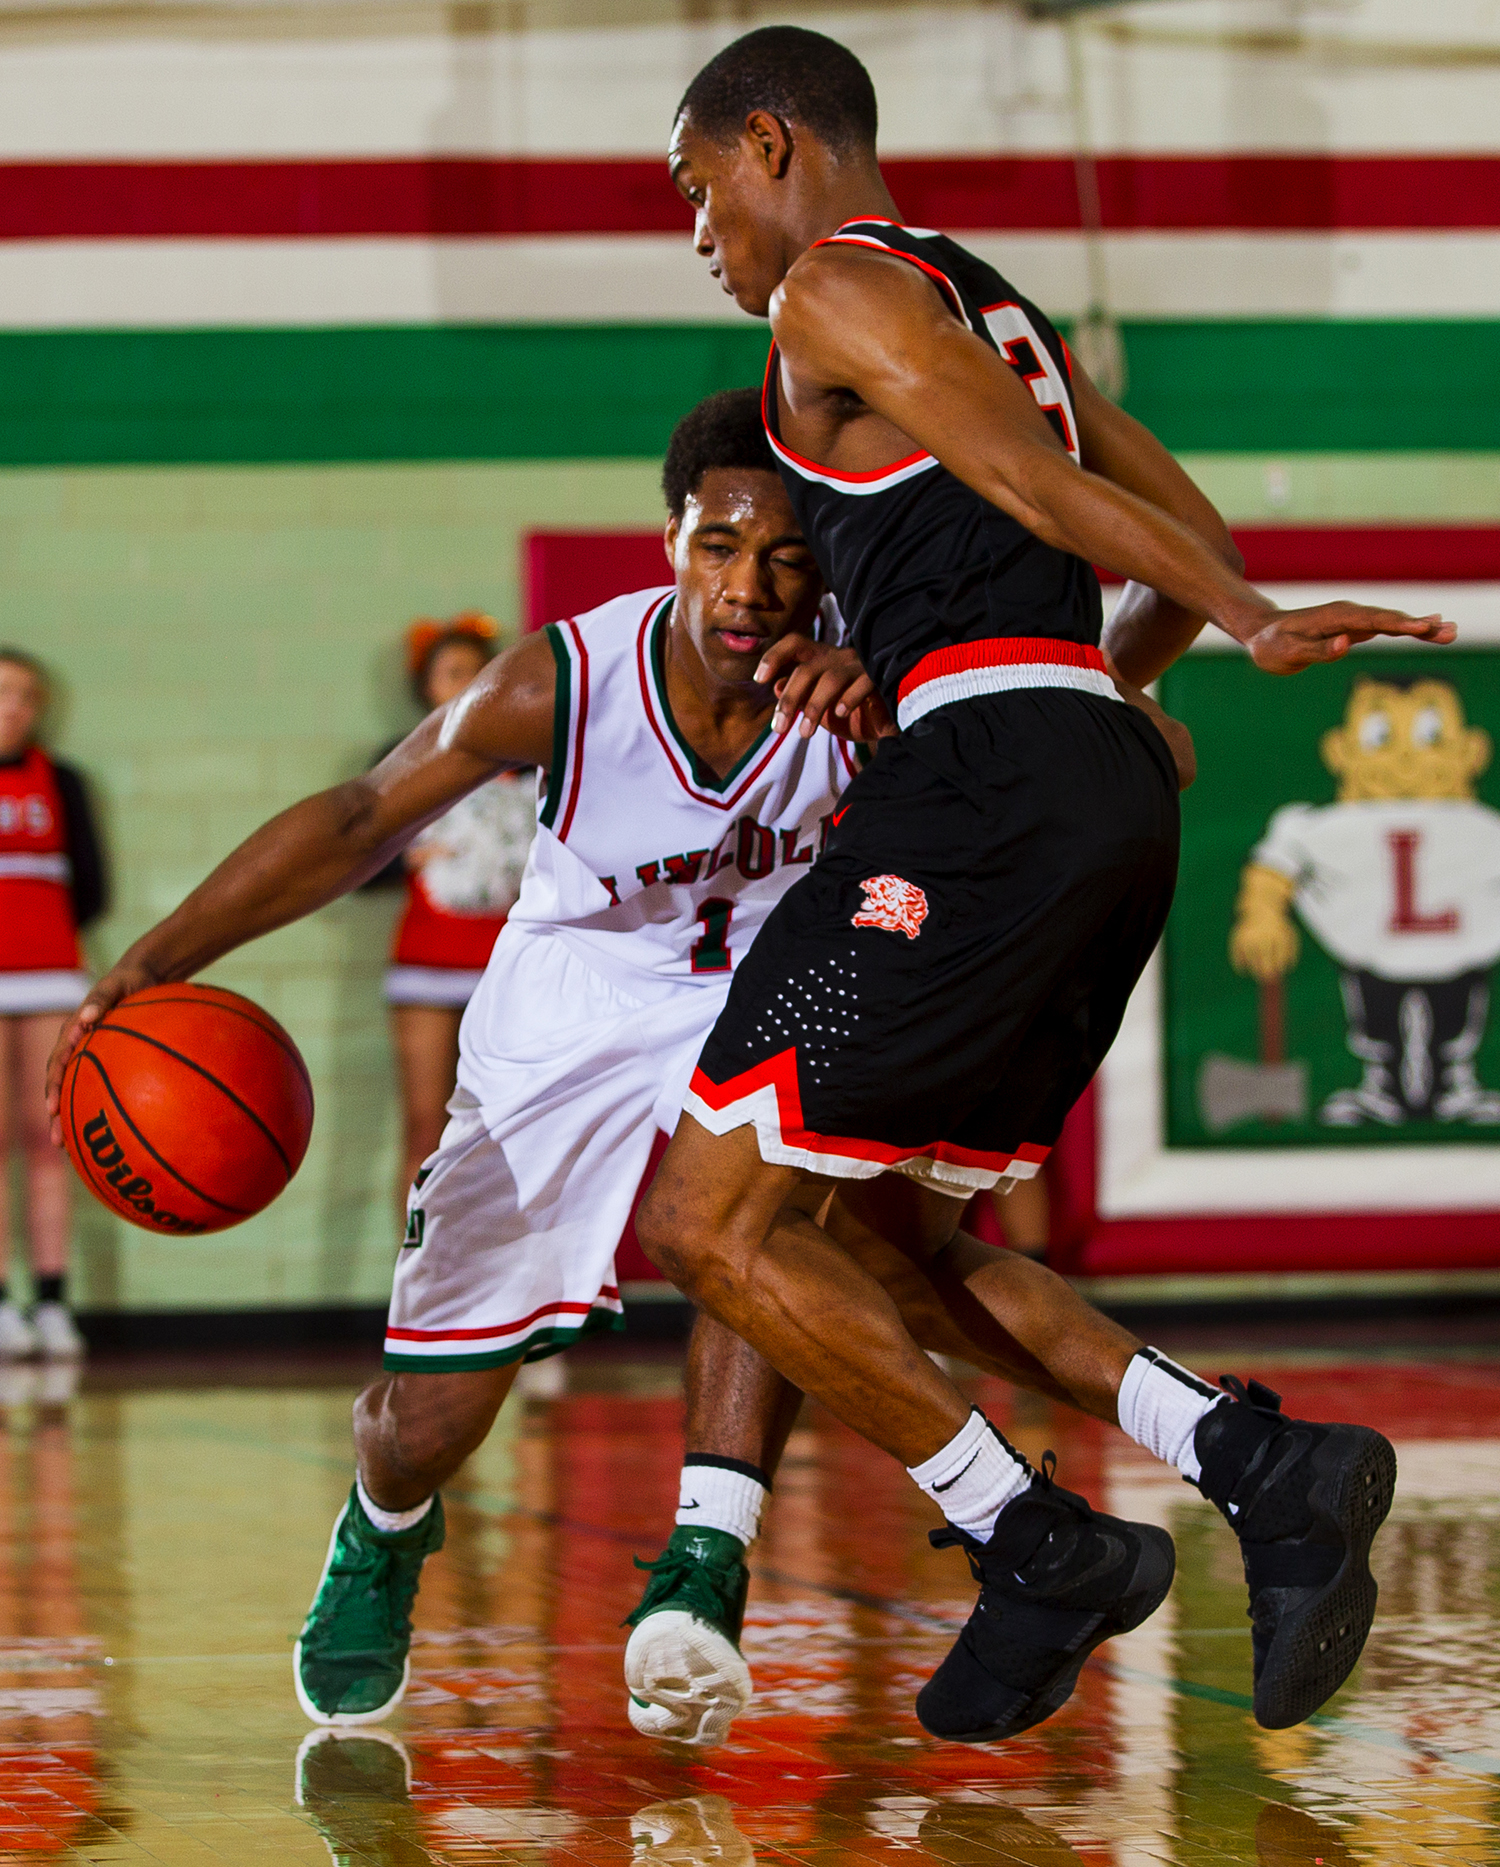 Lincoln's Titus Canon plows into Lanphier's Aundrae Williams at Lincoln High School Friday, February 10, 2017. [Ted Schurter/The State Journal-Register]